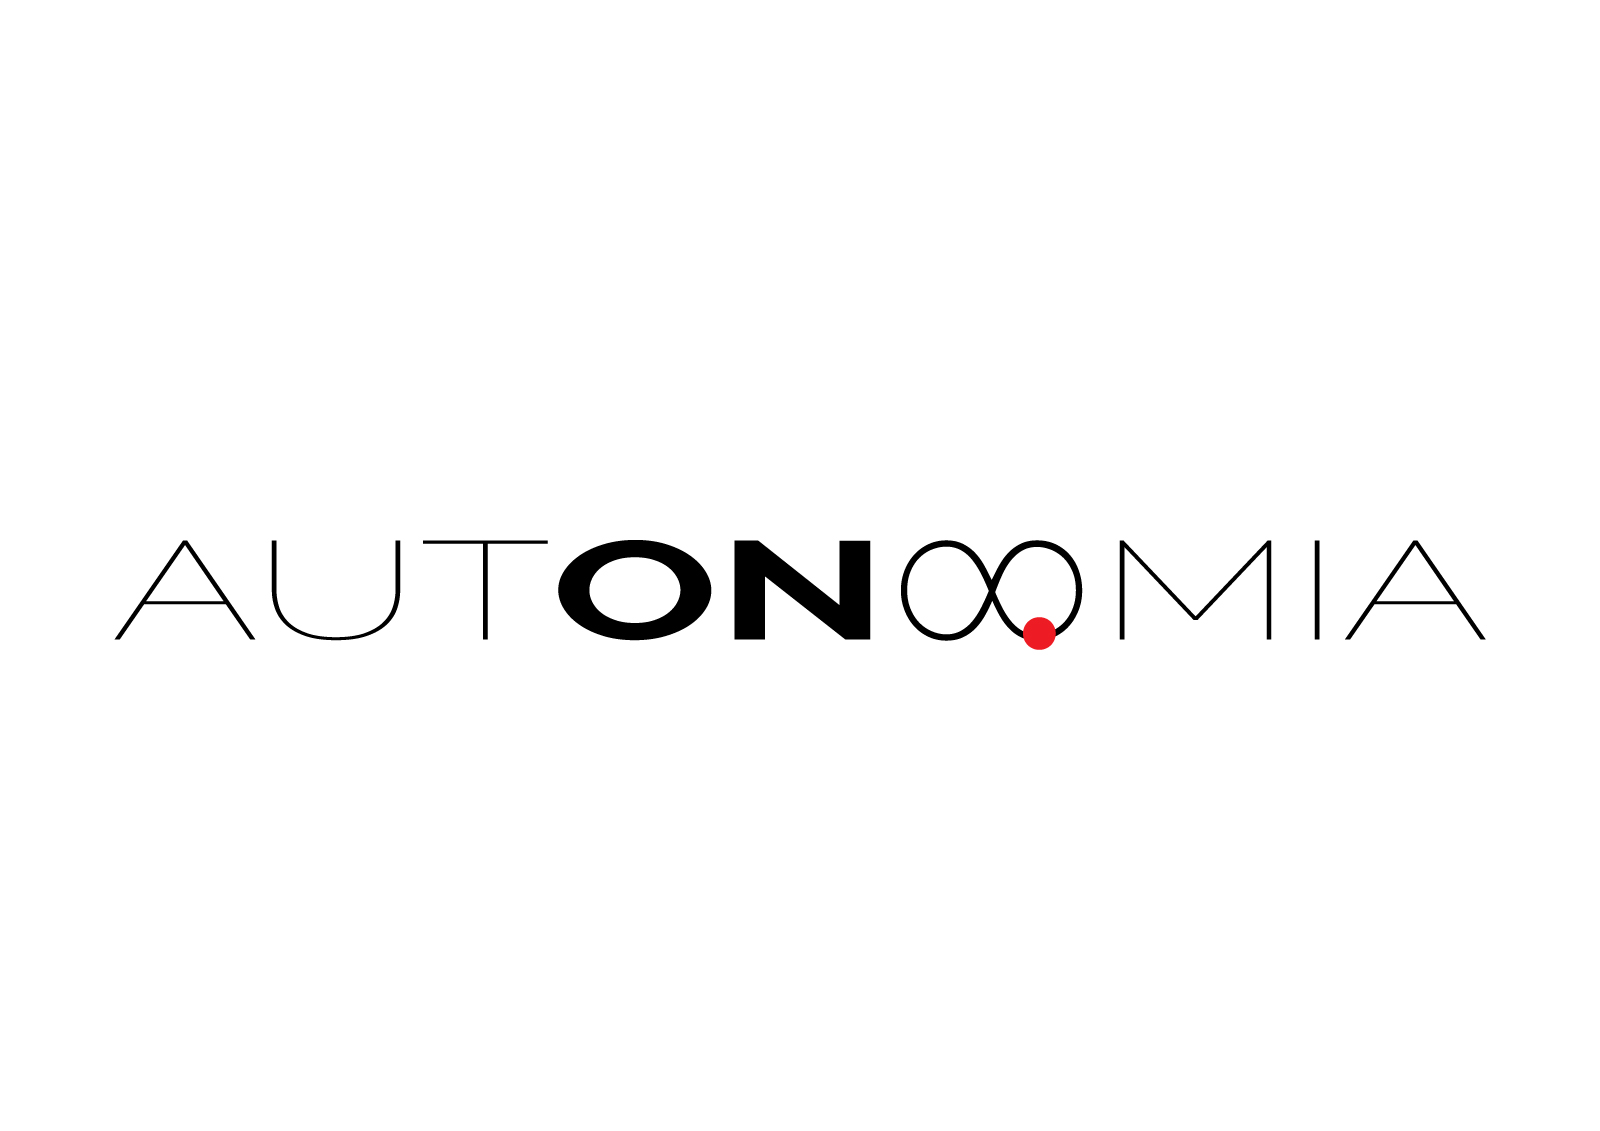 Logo for Autonoomia